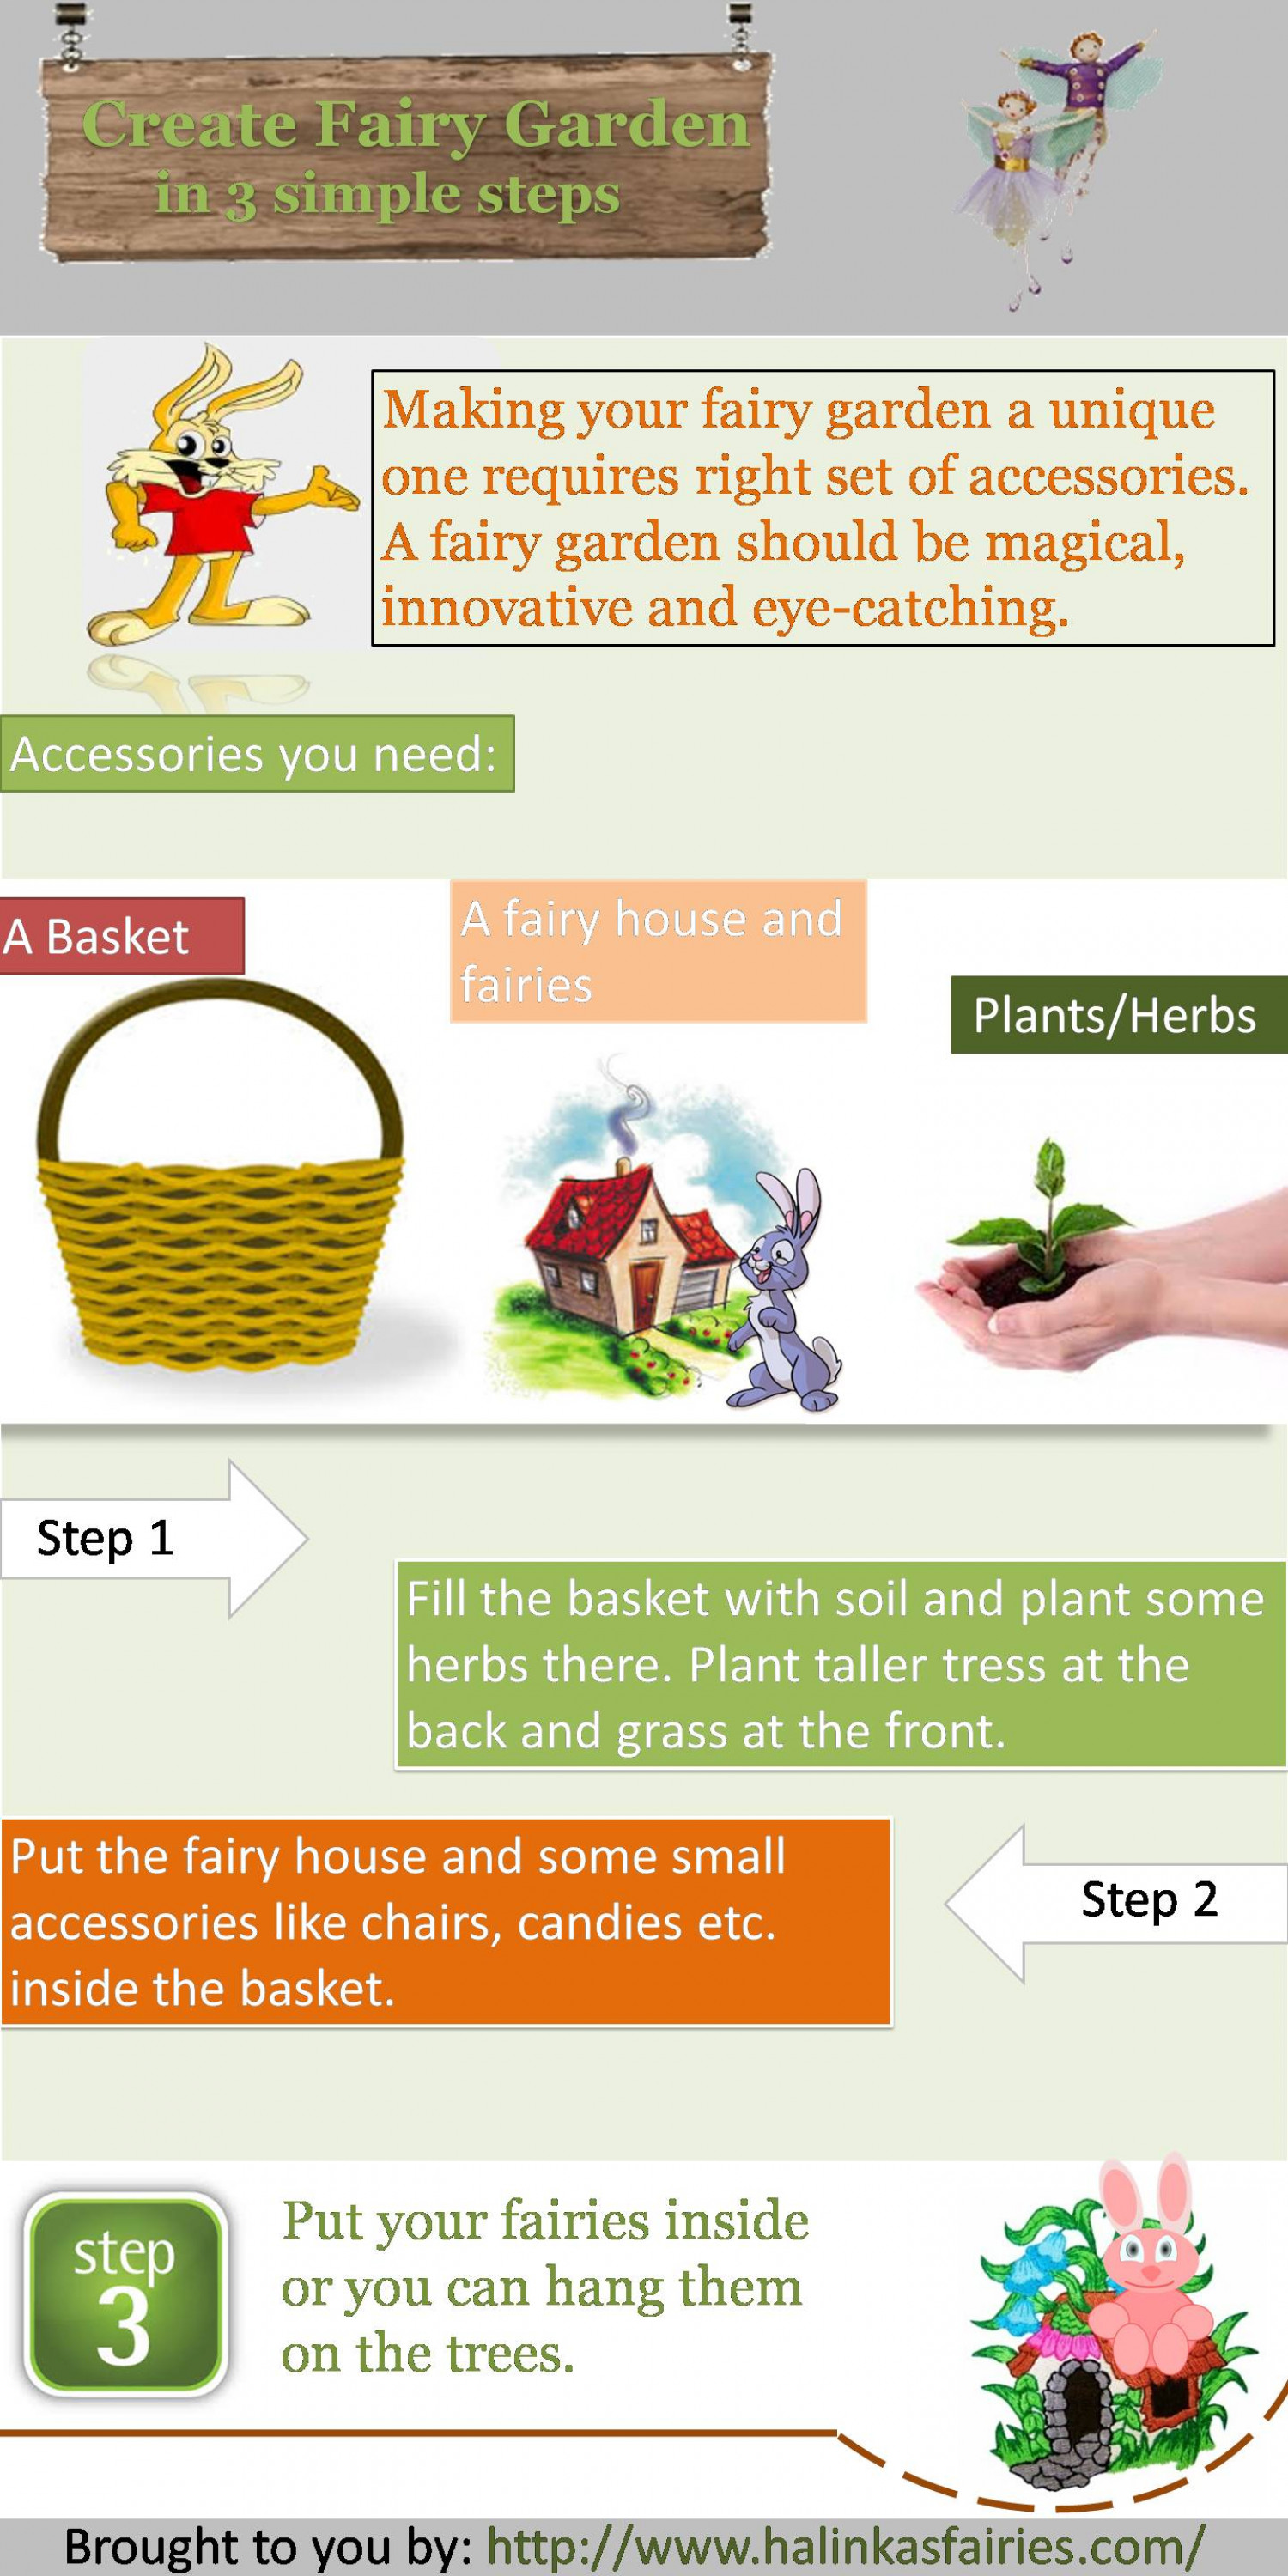 Create Fairy Garden in 3 Simple Steps Infographic